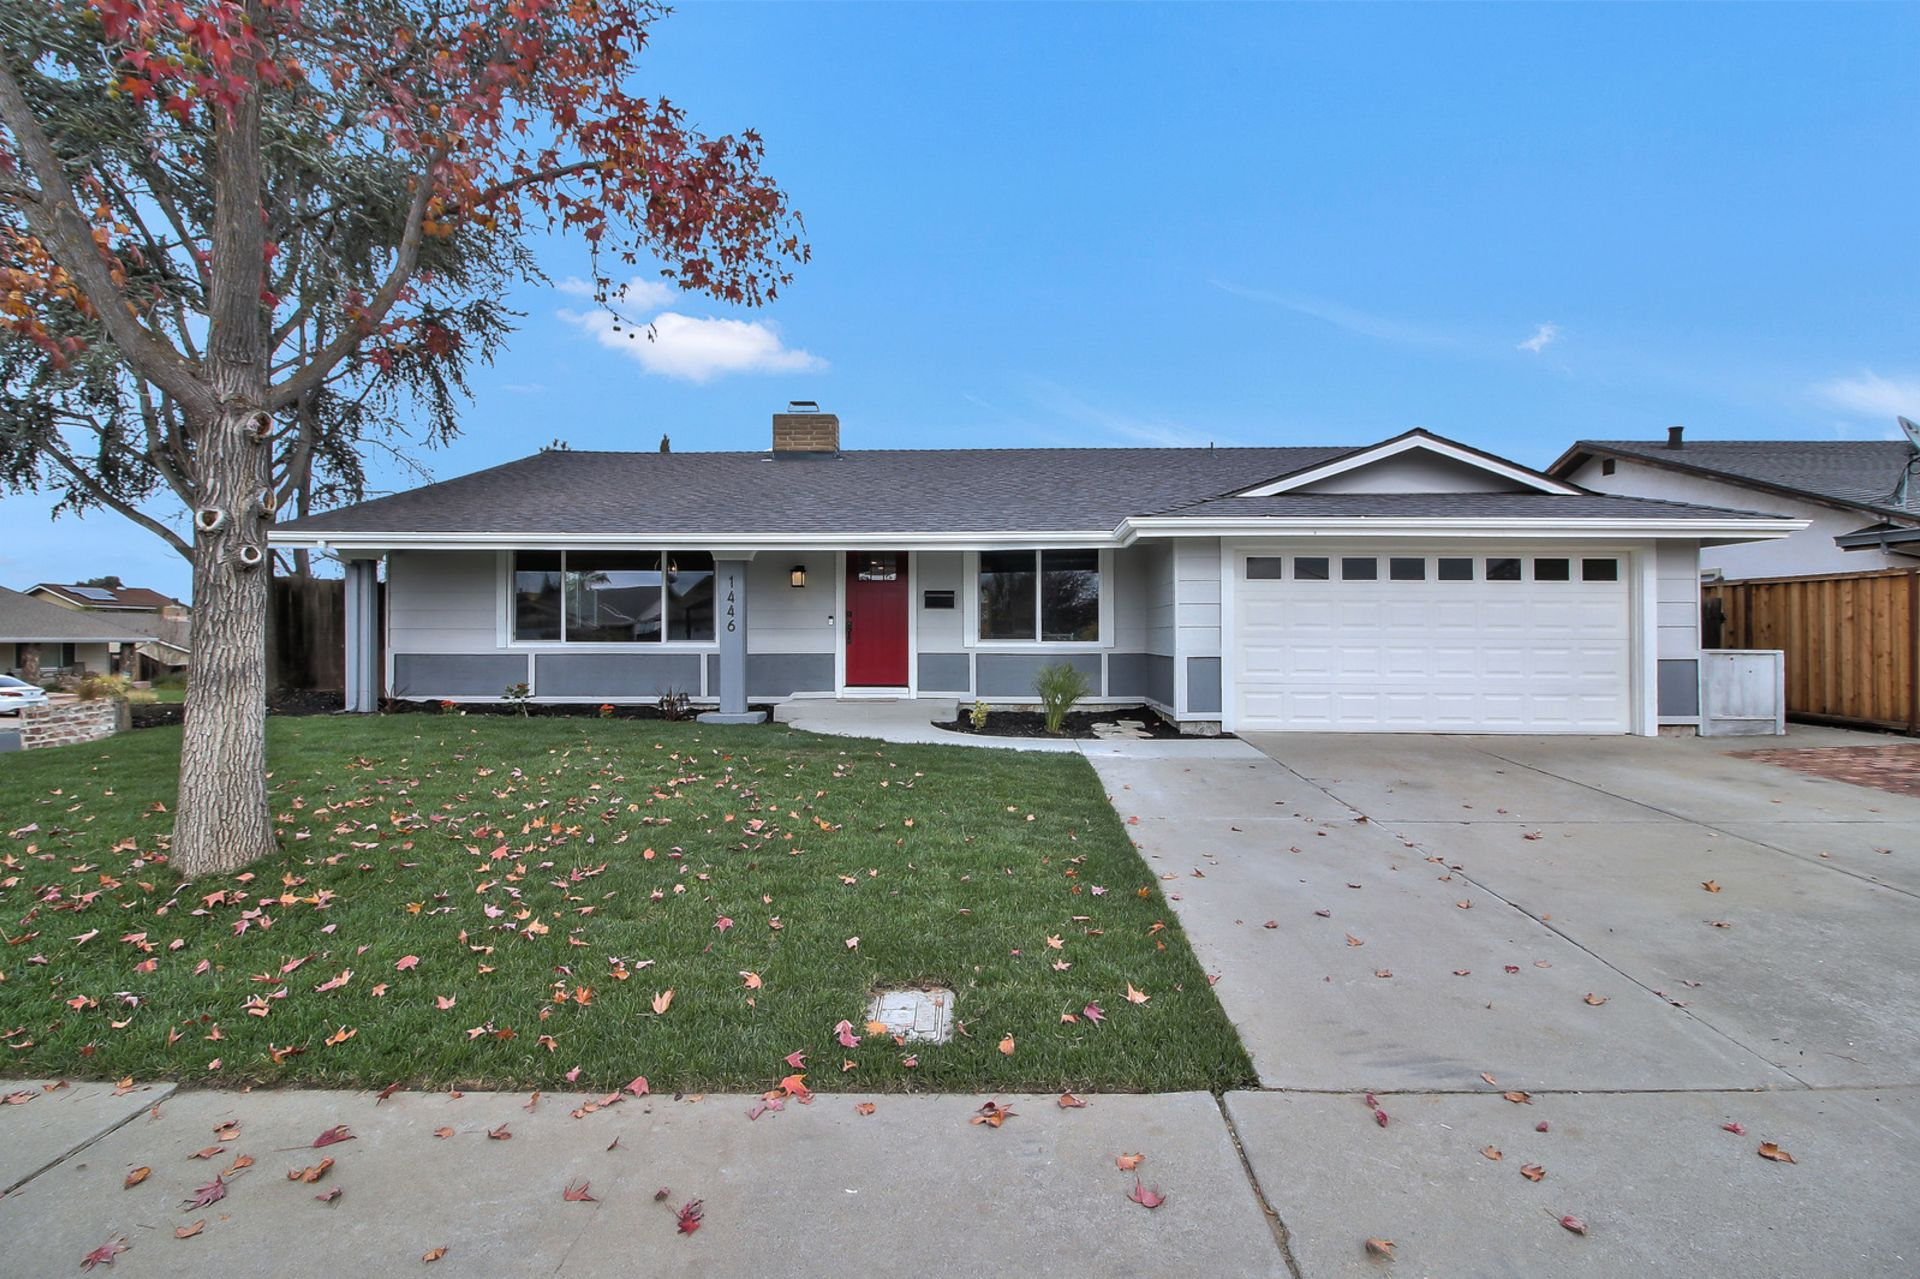 NEW PRICE! 1446 Berlin Way – Livermore